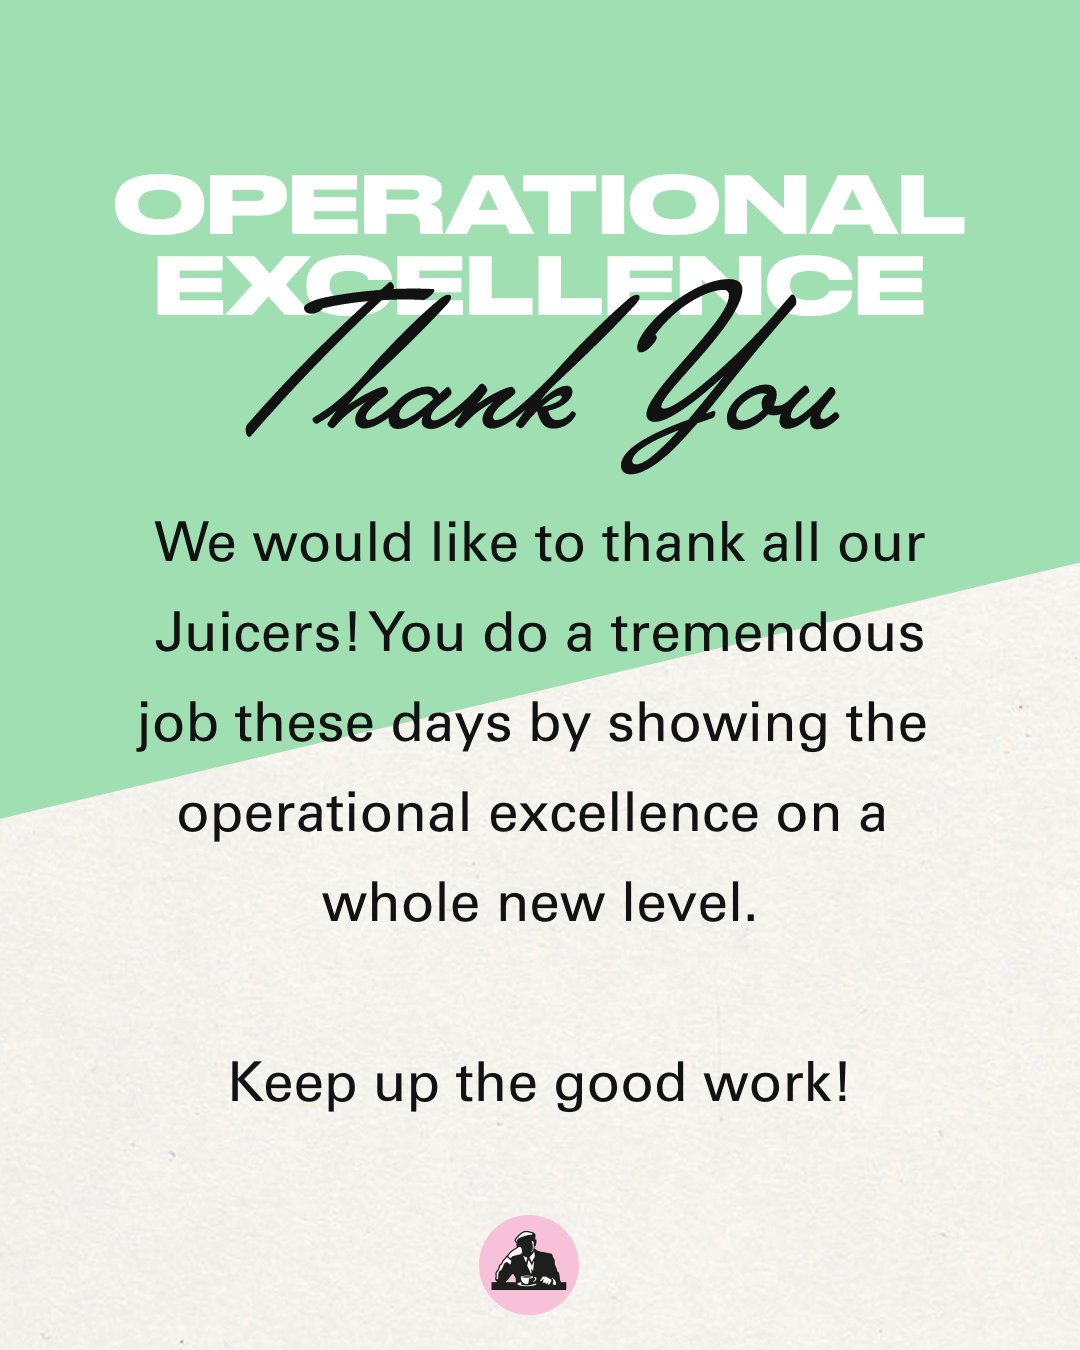 Operational excelence - Thank you